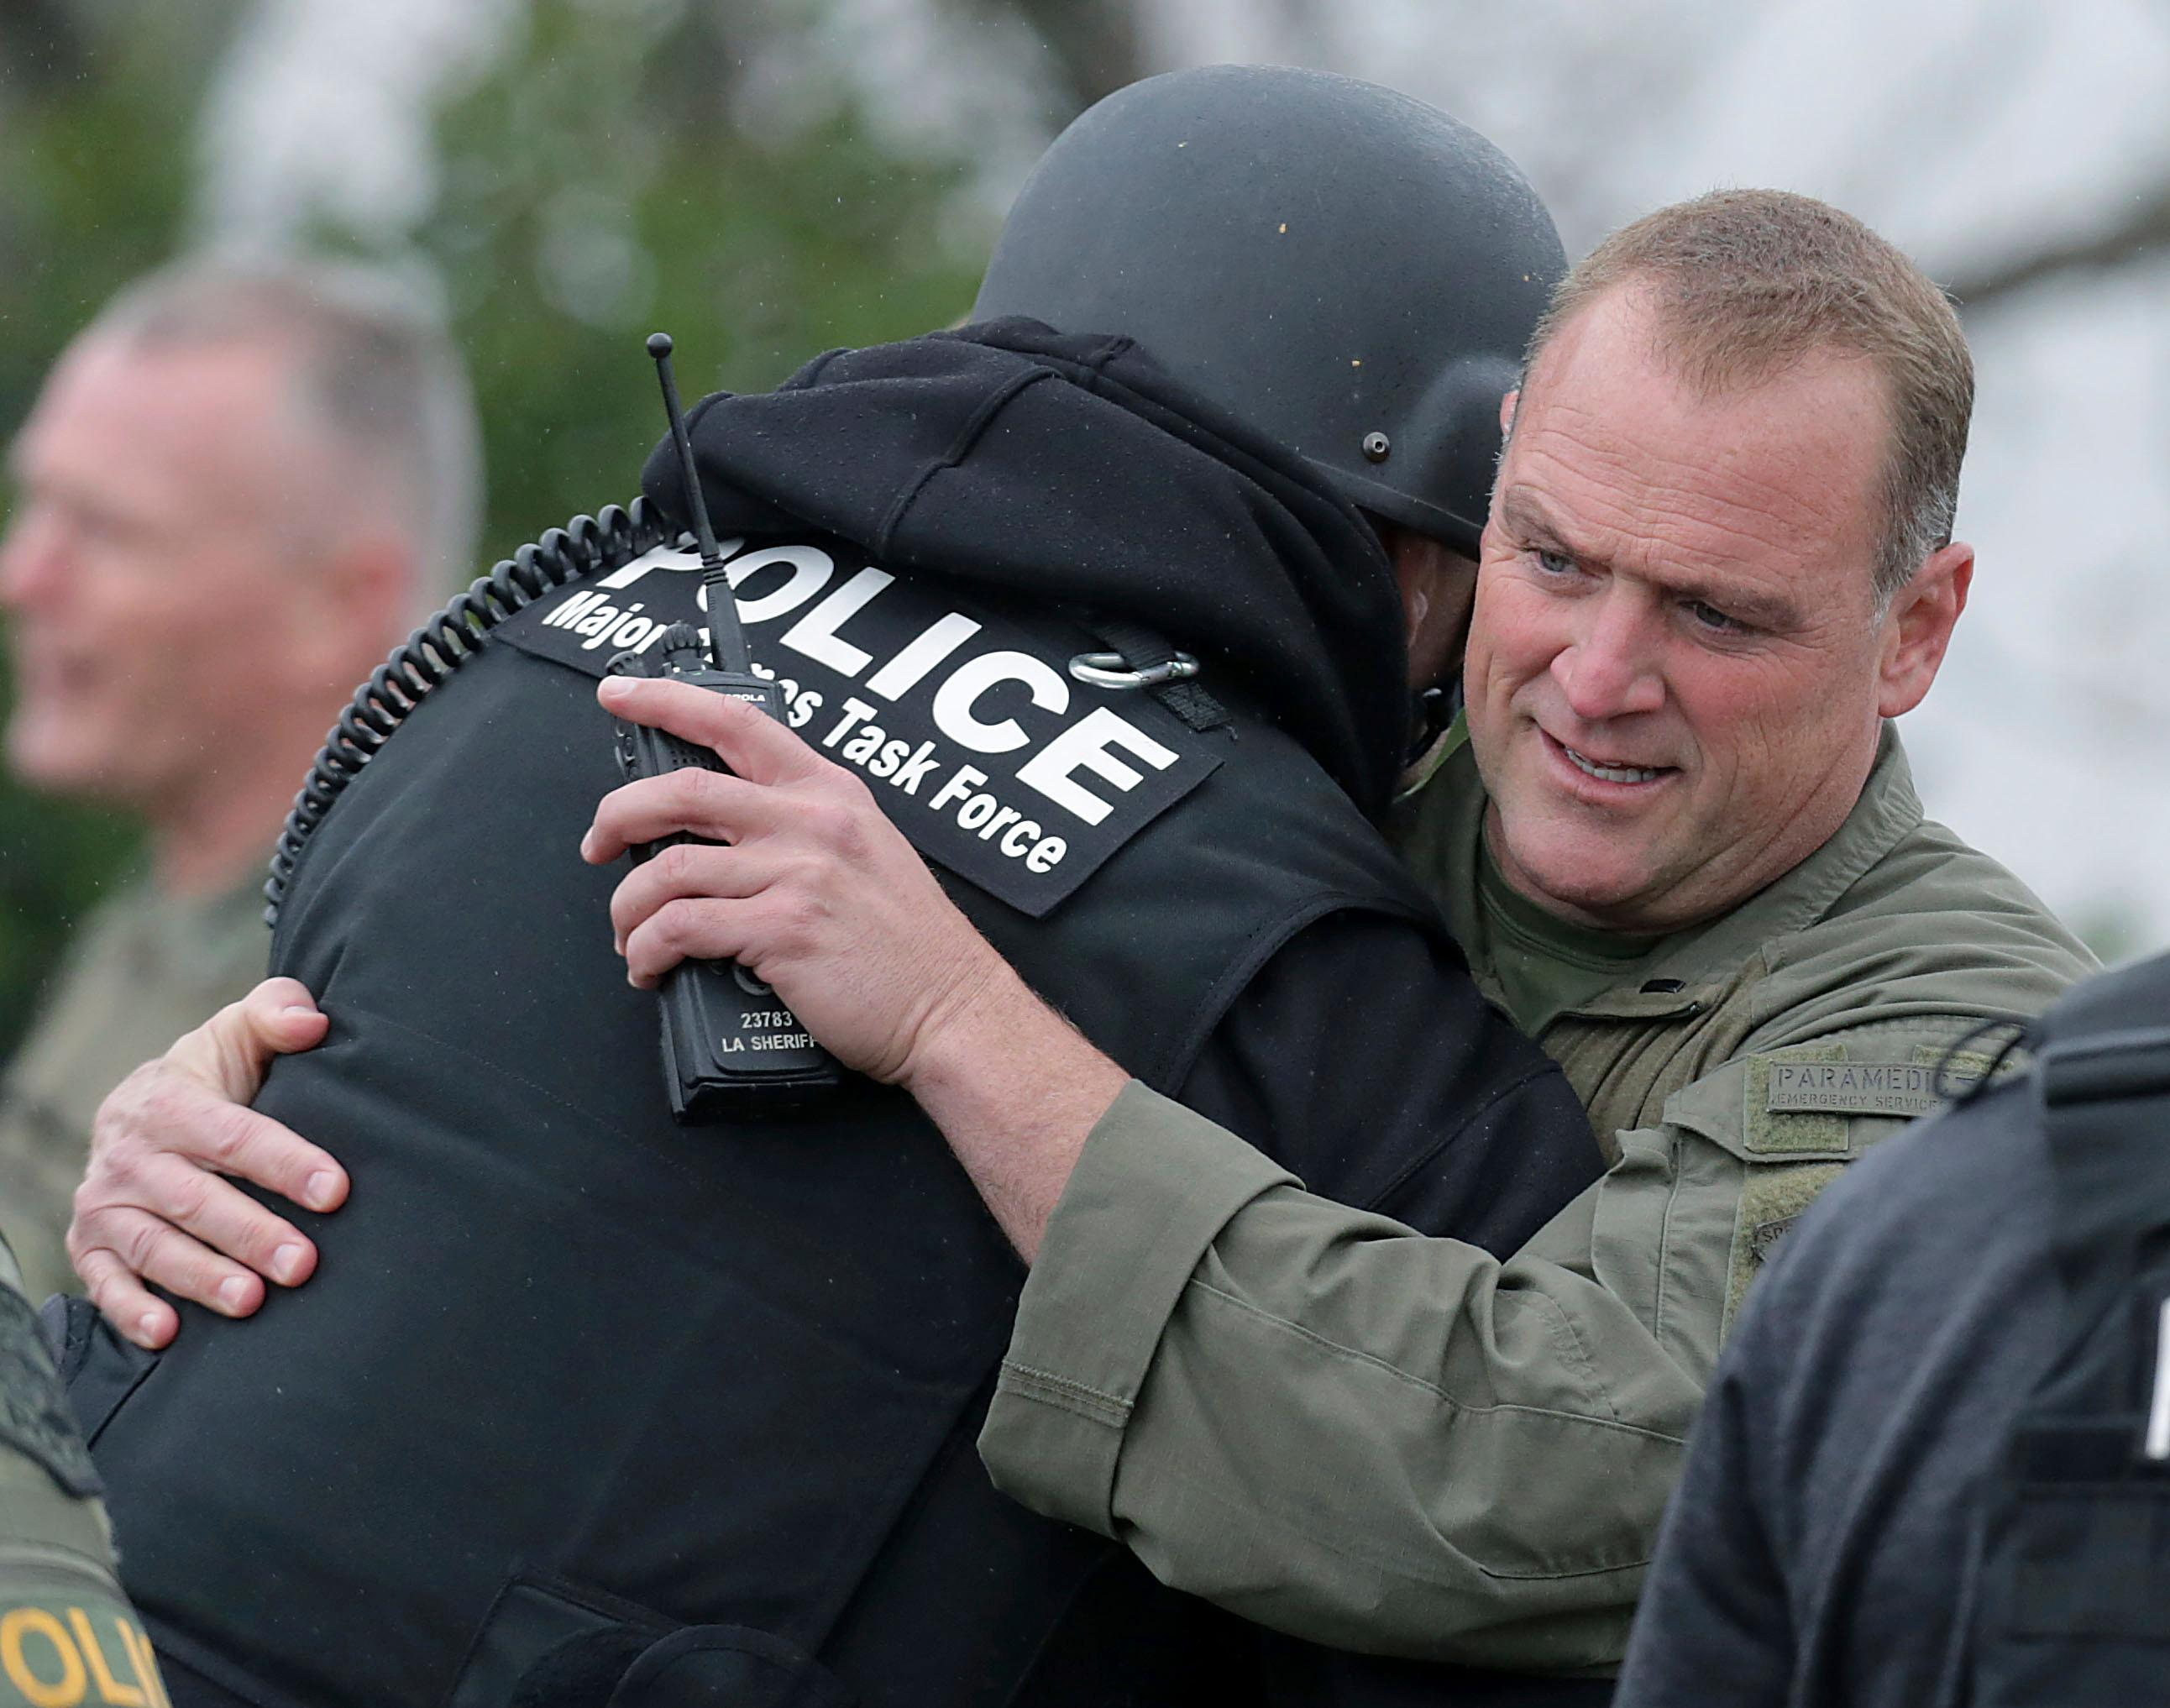 Pomona Police officers hug after arresting the stand-off suspect in an apartment Saturday, March 10, 2018, in Pomona, Calif. The gunman who shot two California police officers, killing one of them, was arrested Saturday after barricading himself in an apartment and holding a SWAT team at bay for more than 15 hours, authorities said. (Terry Pierson/The Press-Enterprise via AP)